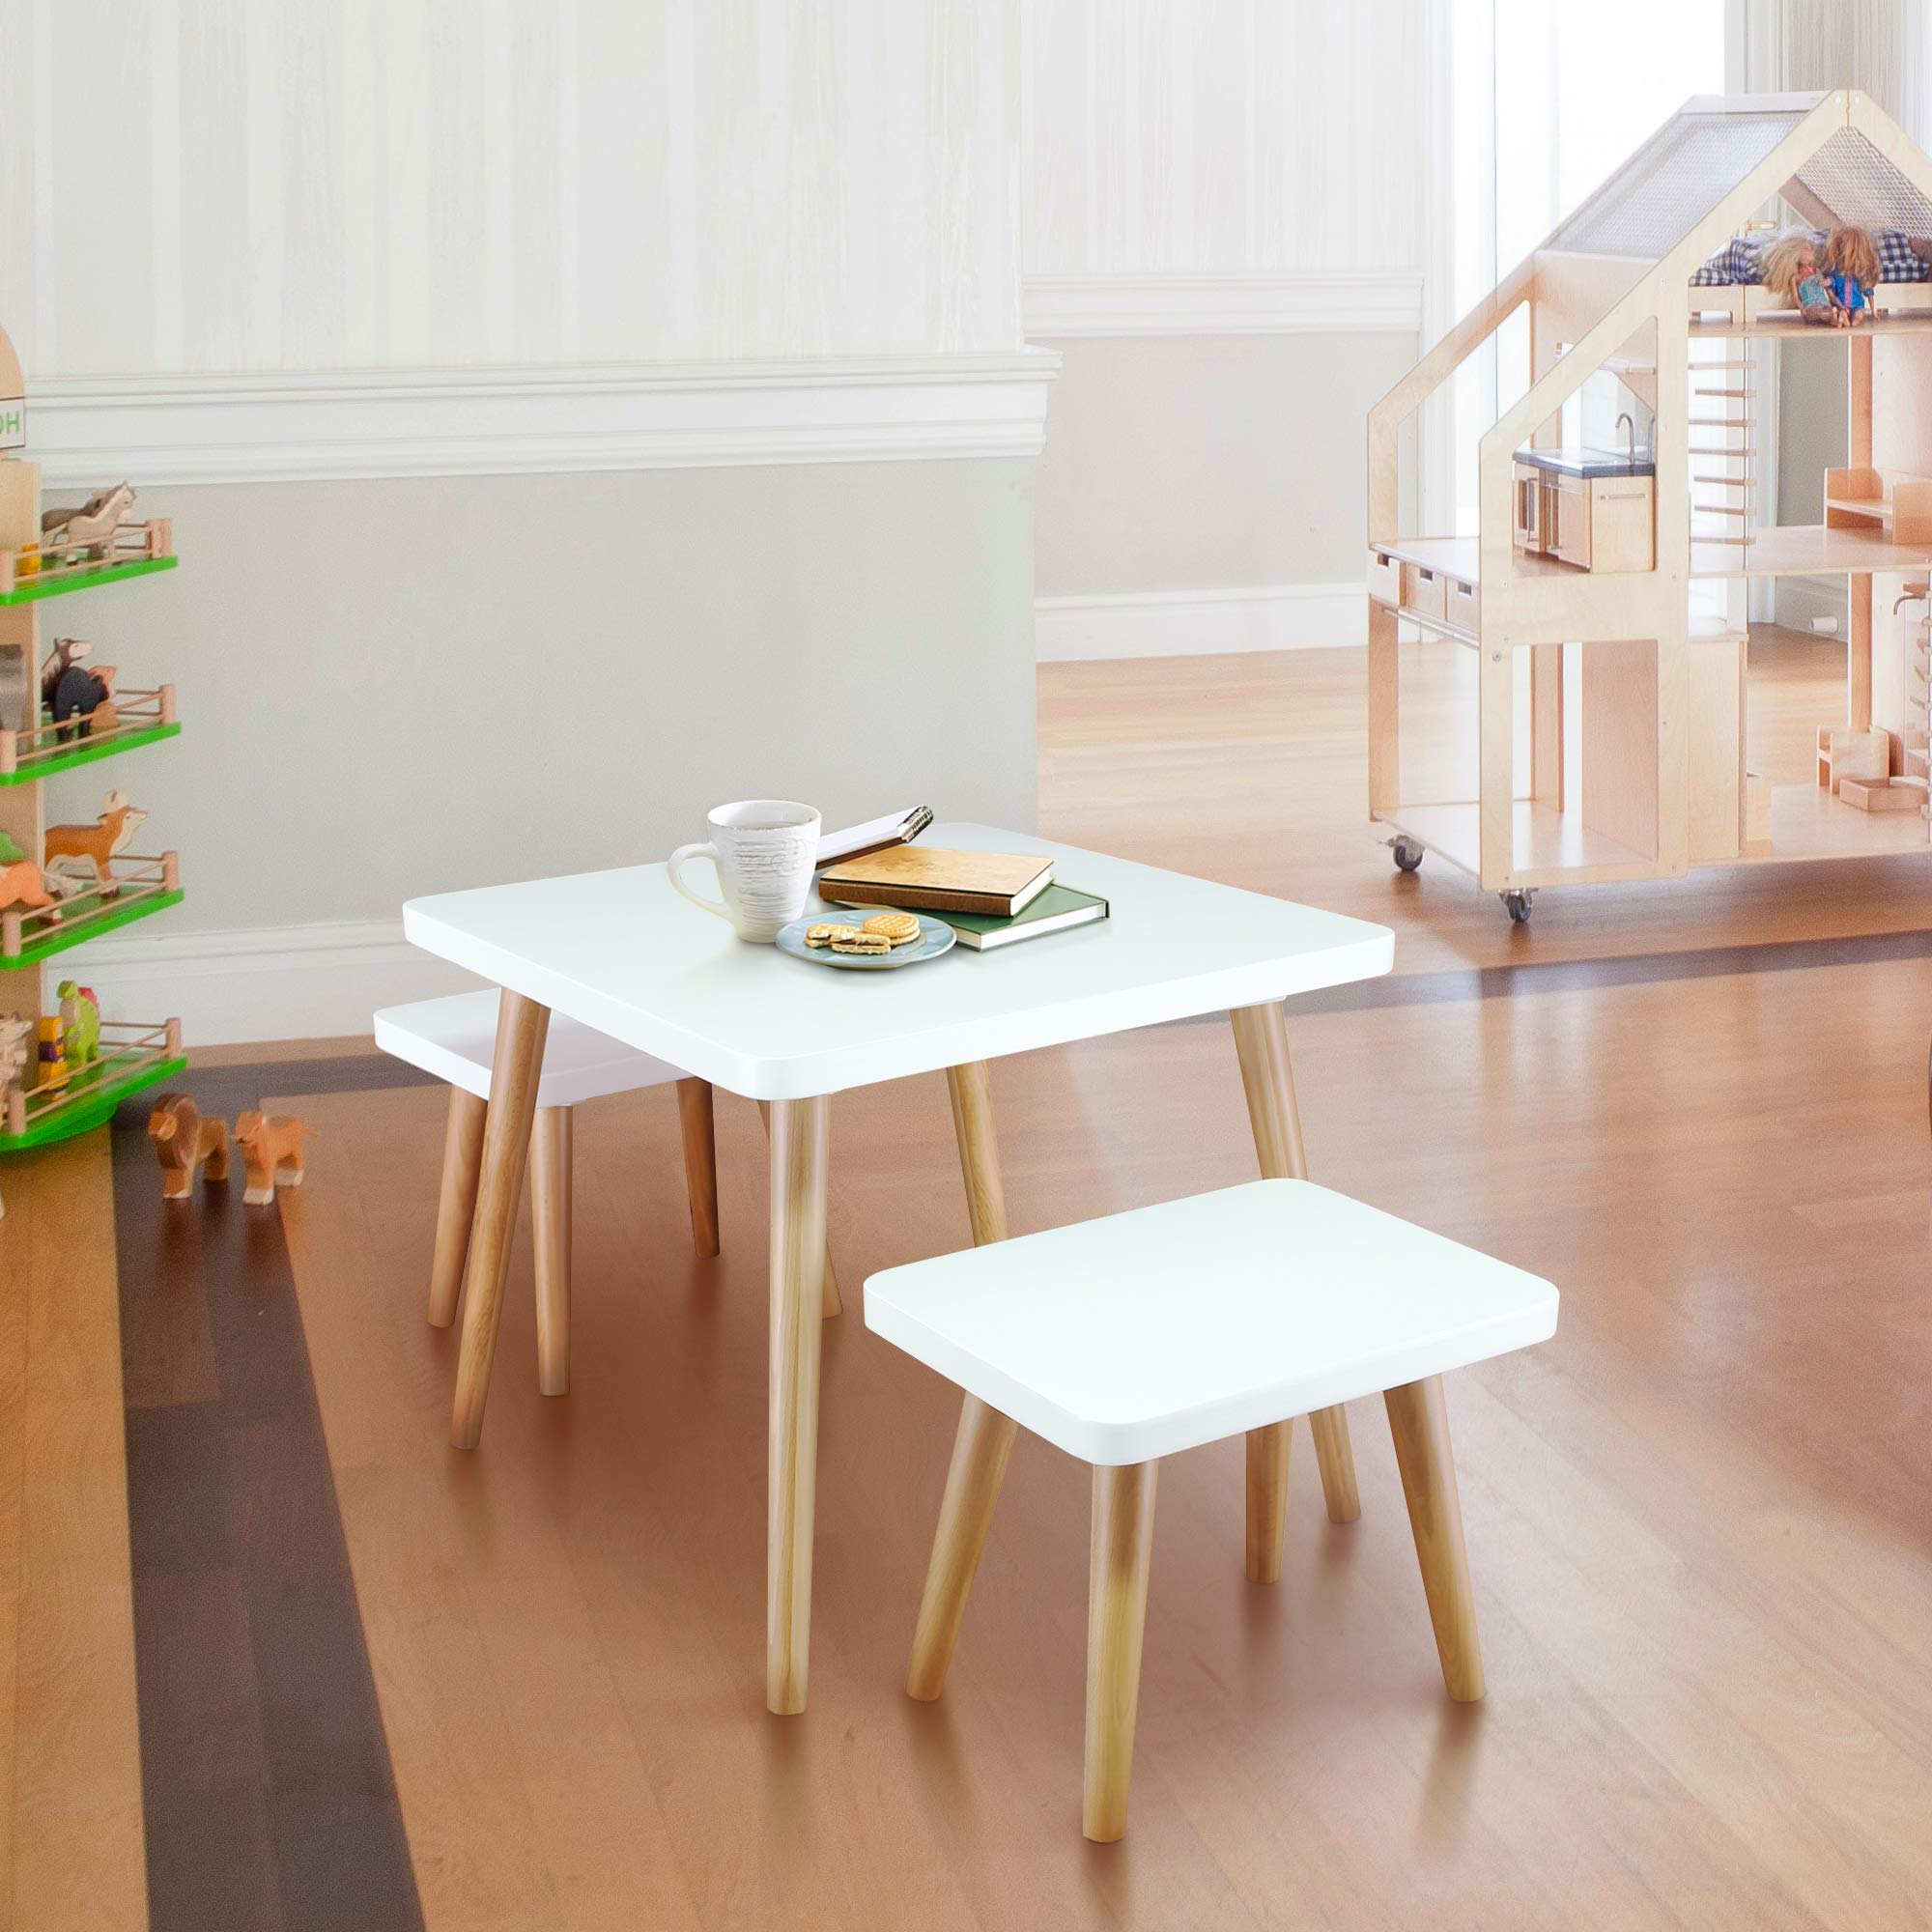 American Trails 560-31 The Easel Table & Chair Set Kid Table, Two-Tone (White, Natural) by American Trails (Image #2)